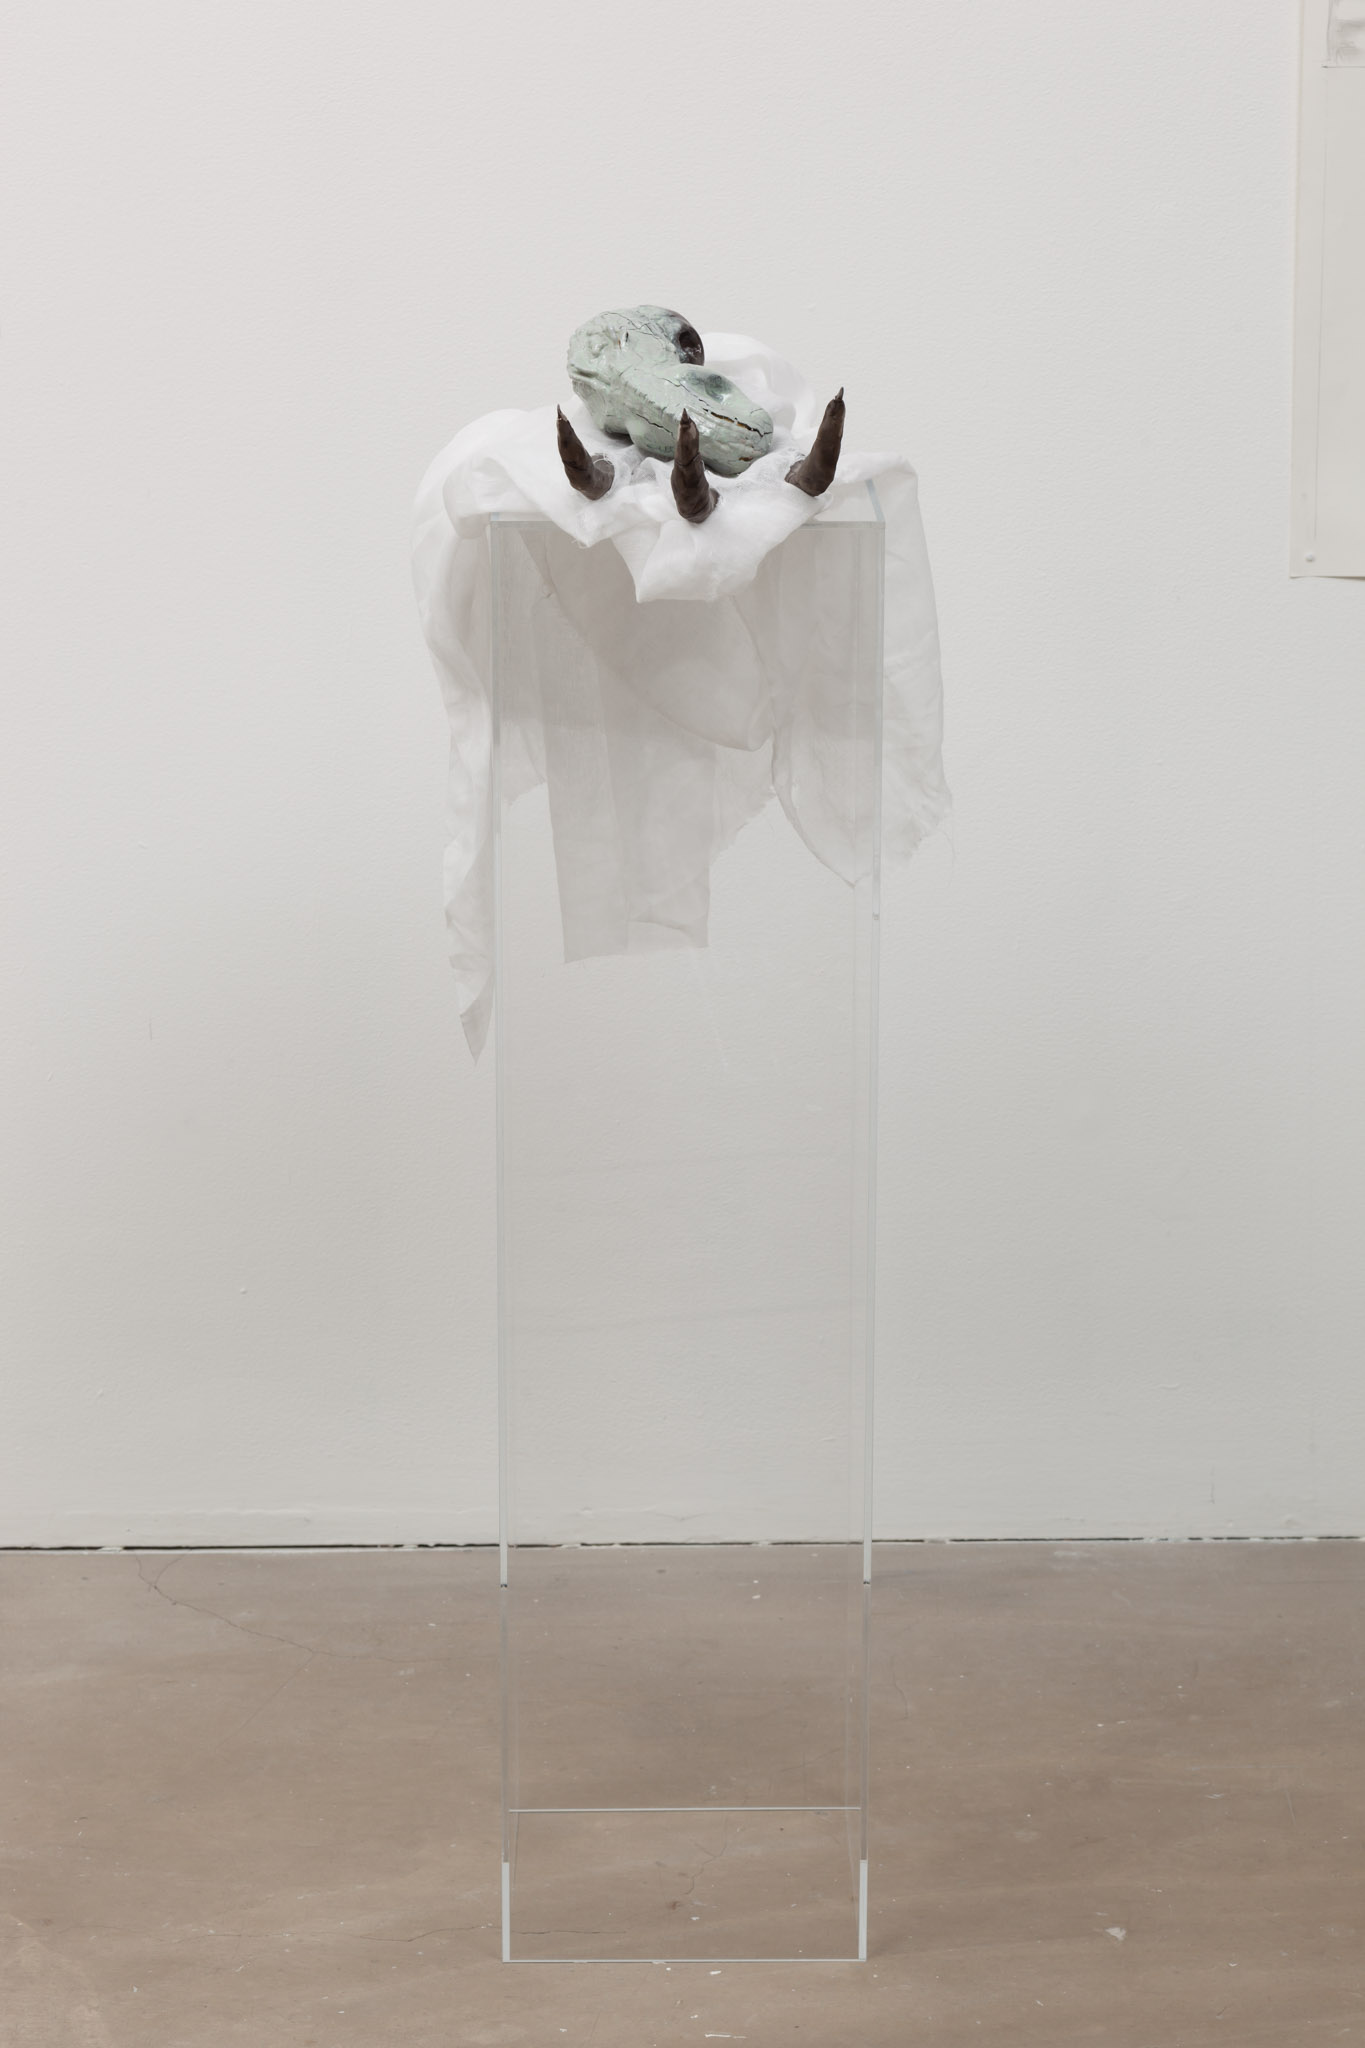 José Rojas, FRACKING, Claw with offering, 2014 Clay, steel, muslin, resin, gourd, plexiglass. 'FRACKING' , José Rojas